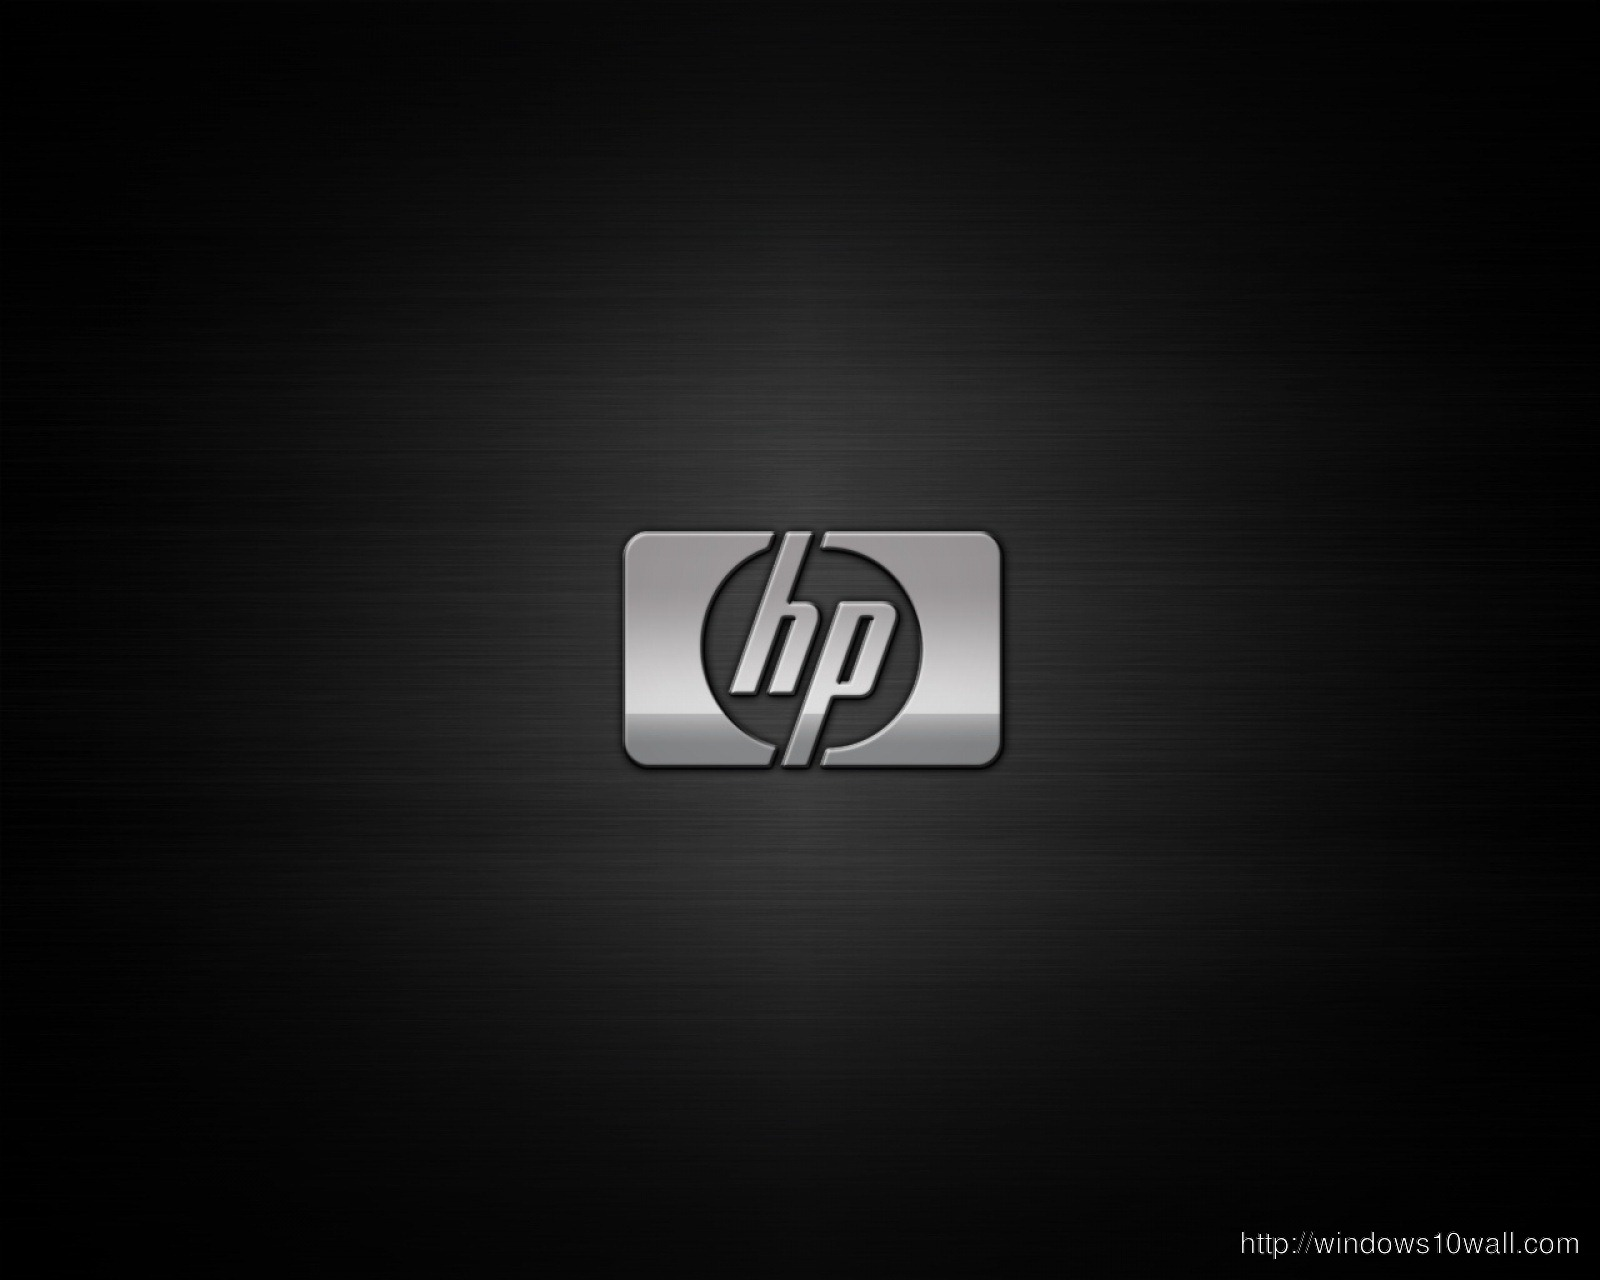 HP Wallpapers for Windows 10  WallpaperSafari